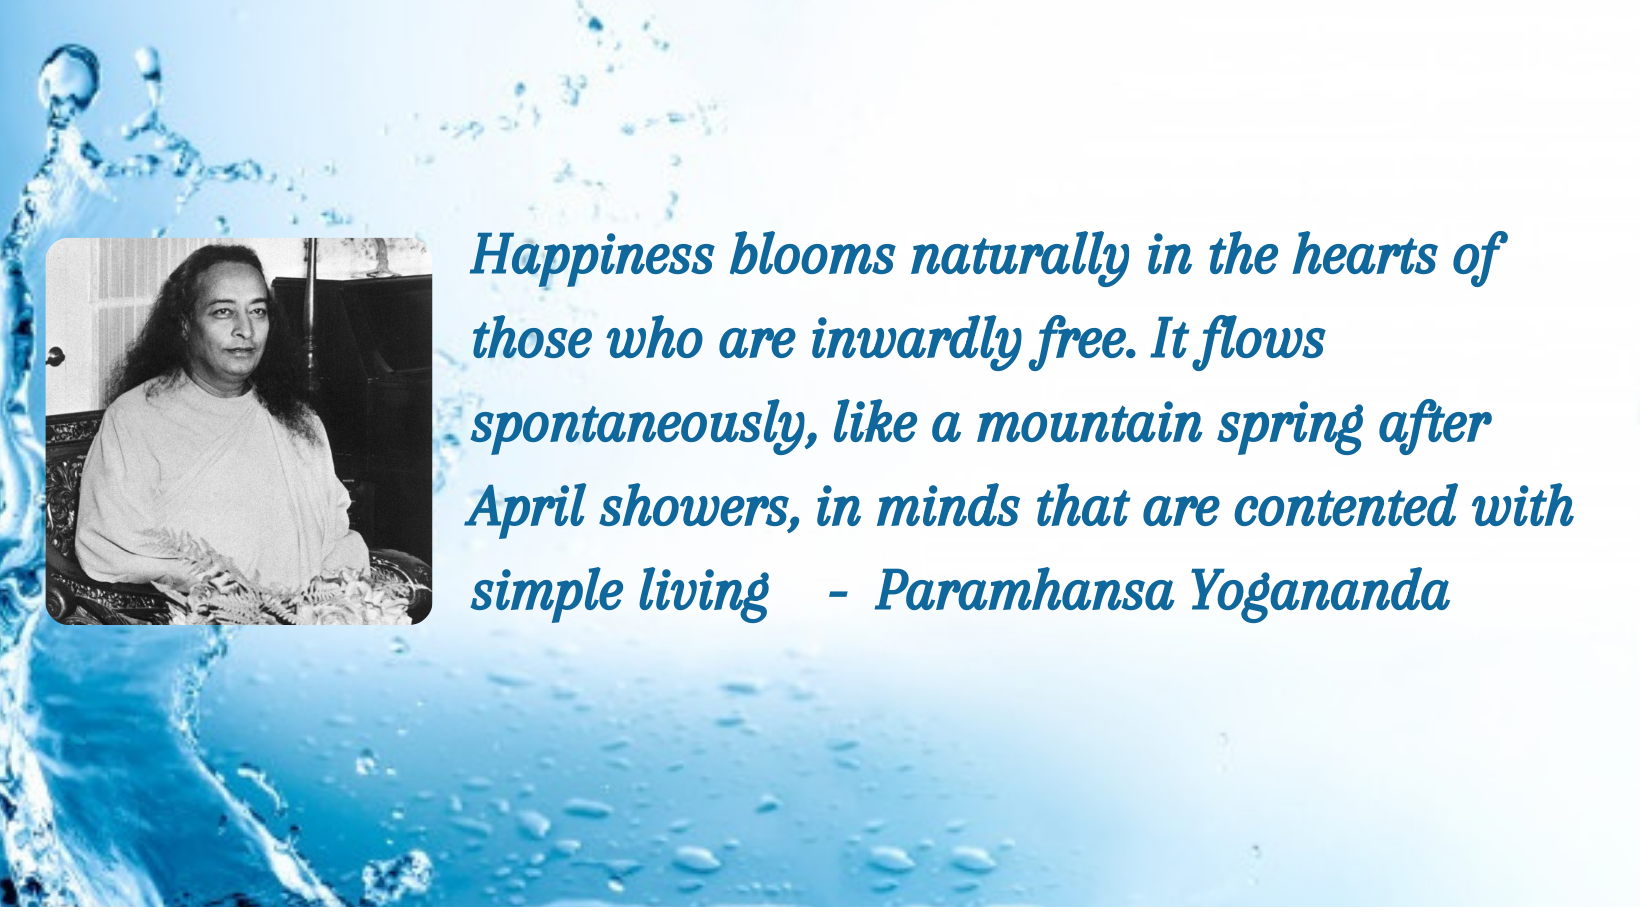 Happiness blooms naturally in the hearts of those who are inwardly free. It flows spontaneously, like a mountain spring after April showers, in minds that are contented with simple living